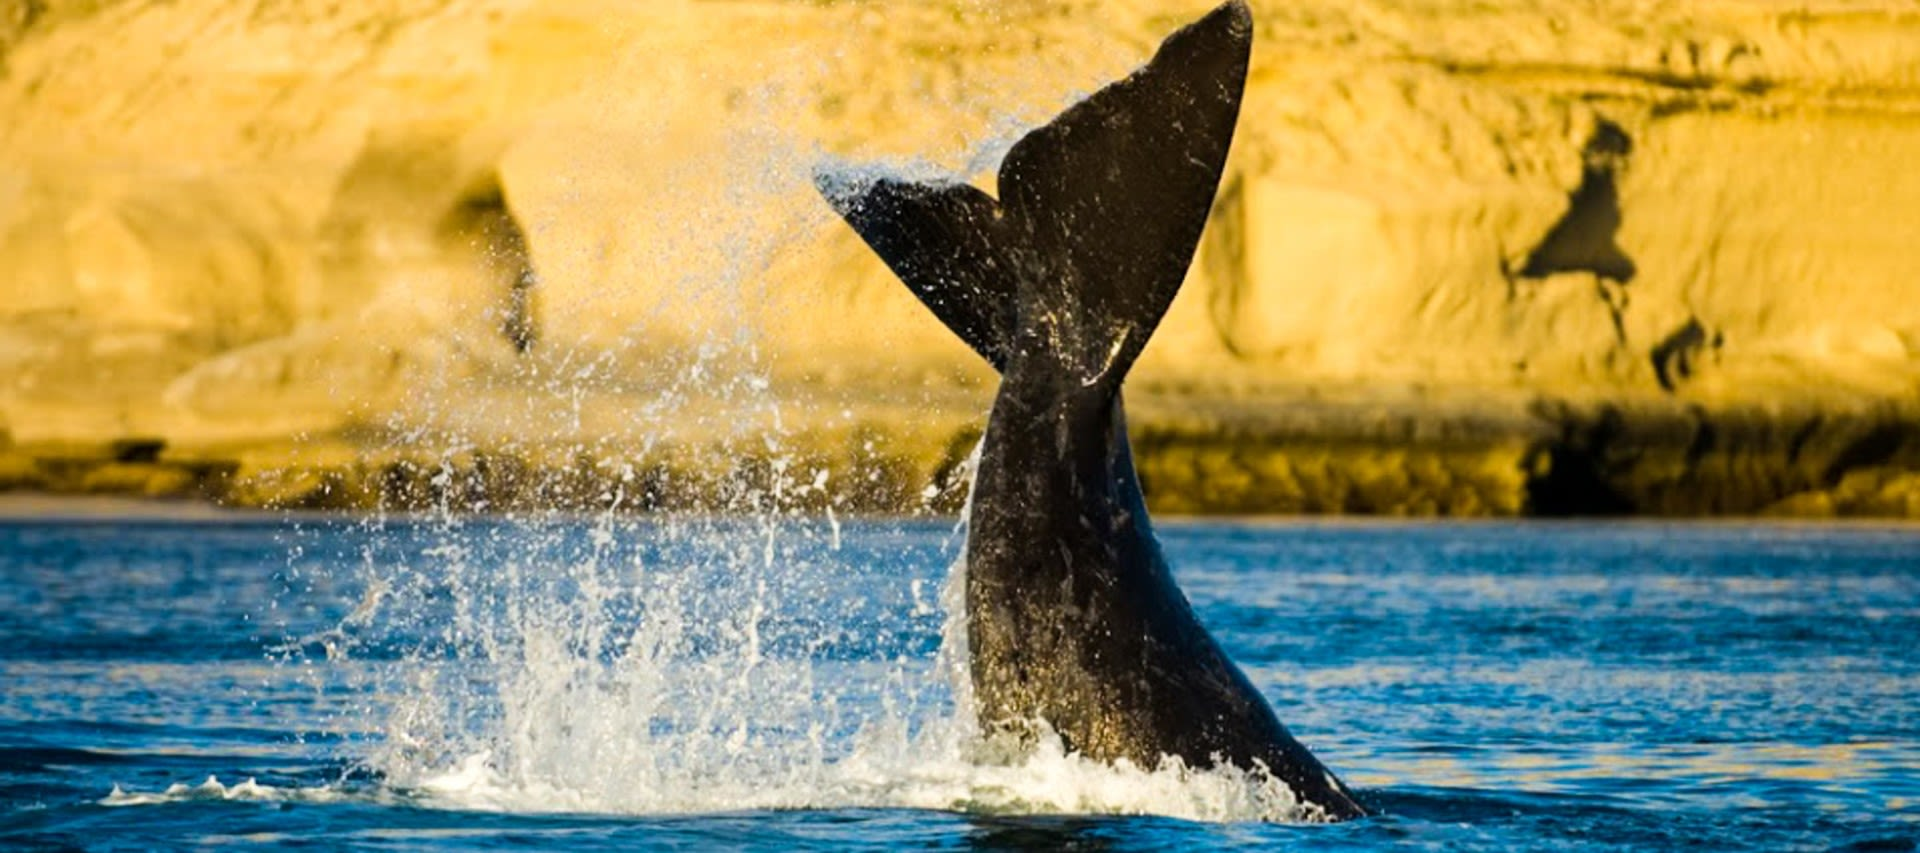 Whale tail flips out of water